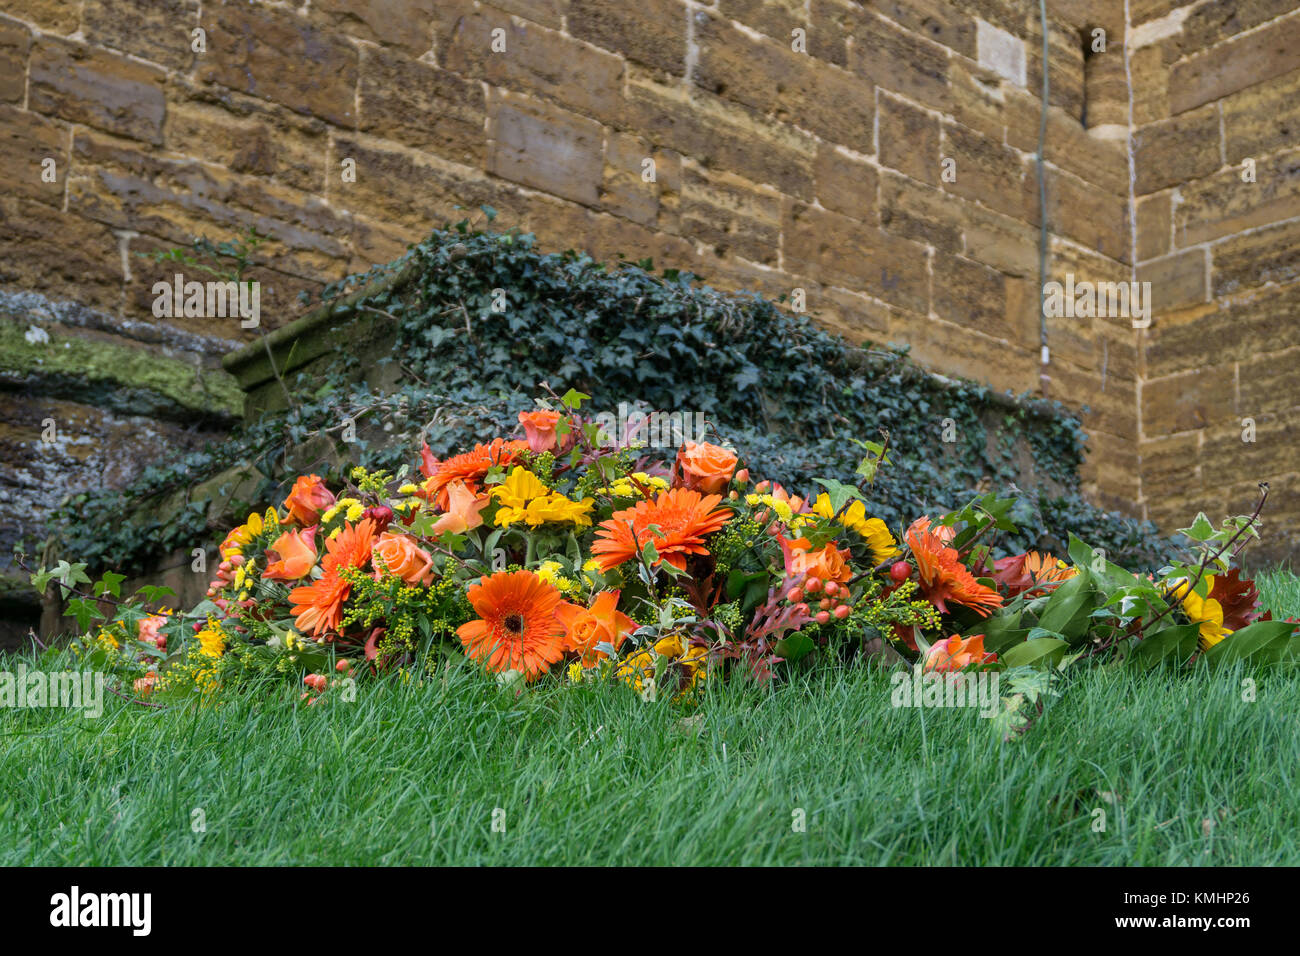 Large Wreath Of Orange And Yellow Flowers With An Old Ivy Covered